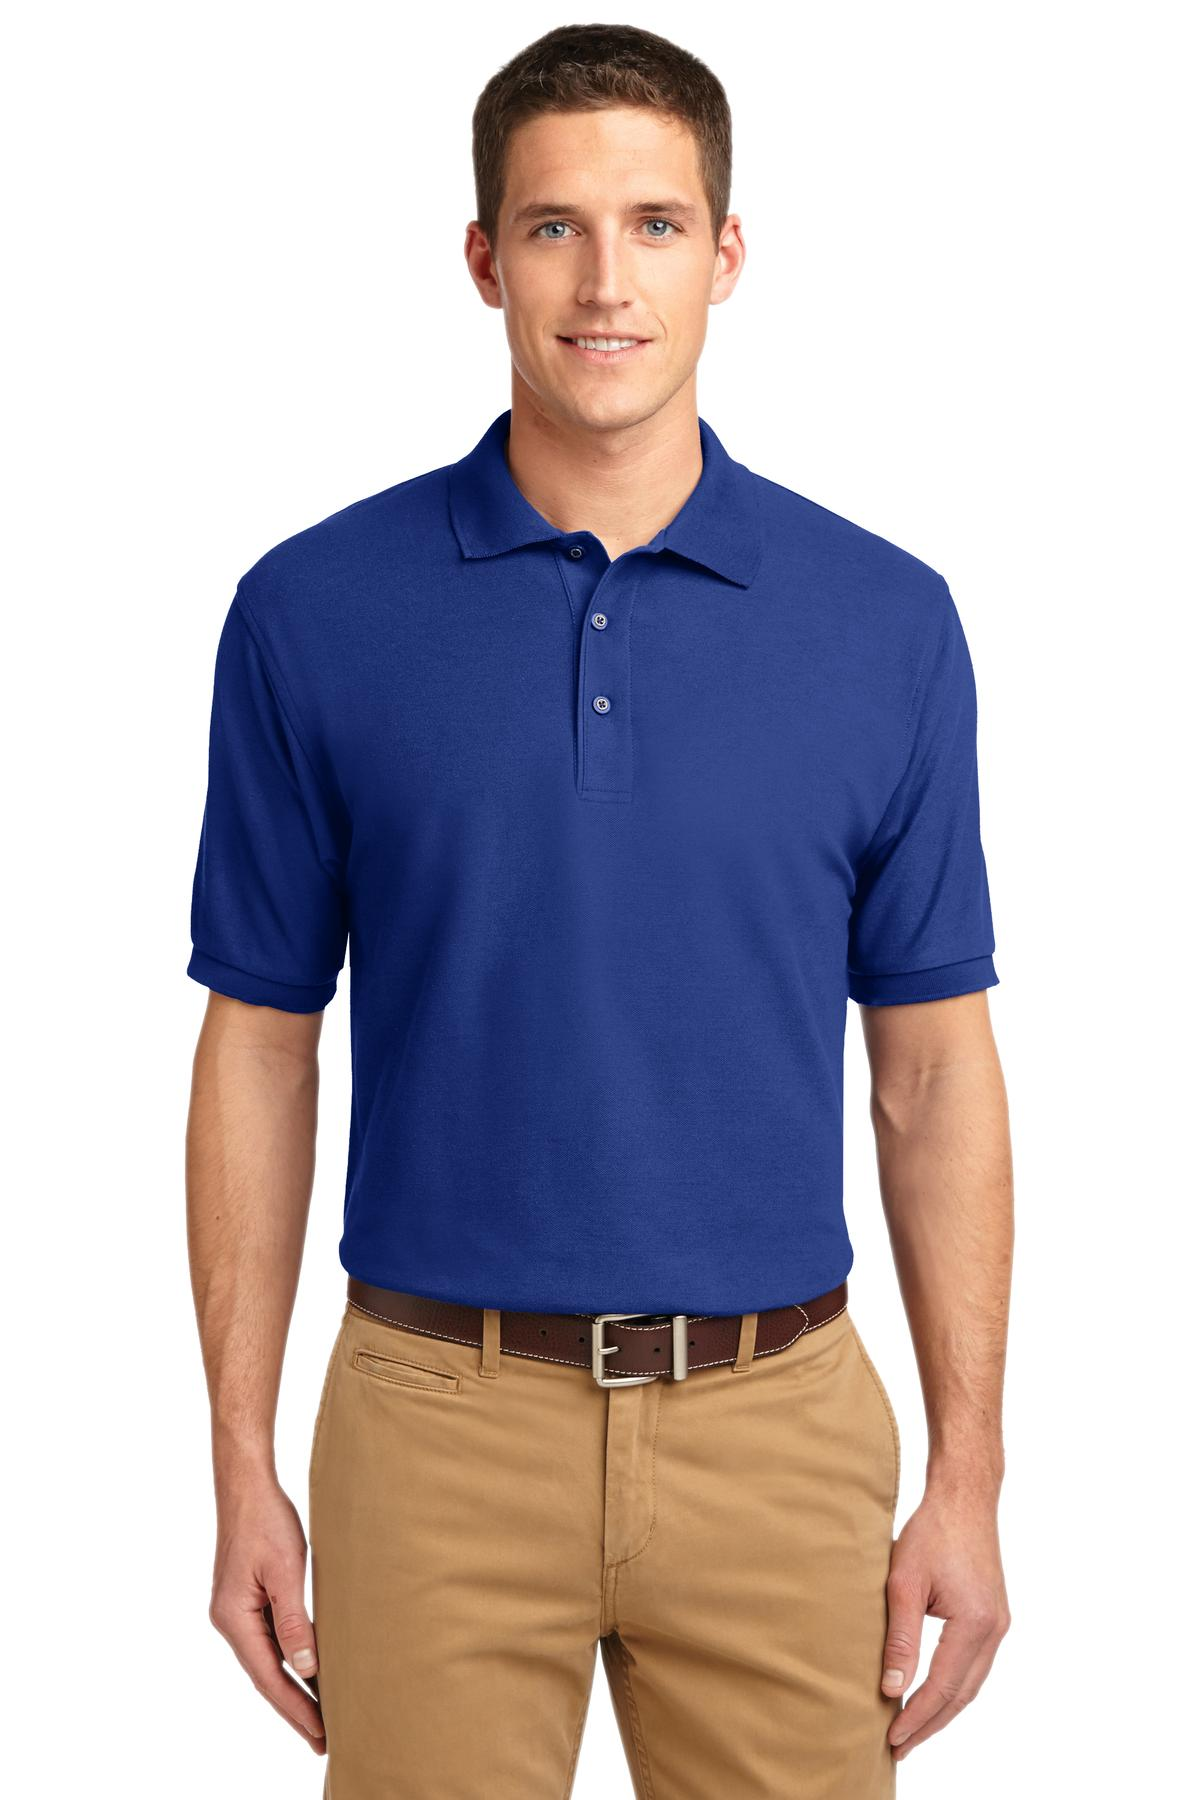 Men's Prince George's County Fire Cadet Uniform Polo-A1 Uniform